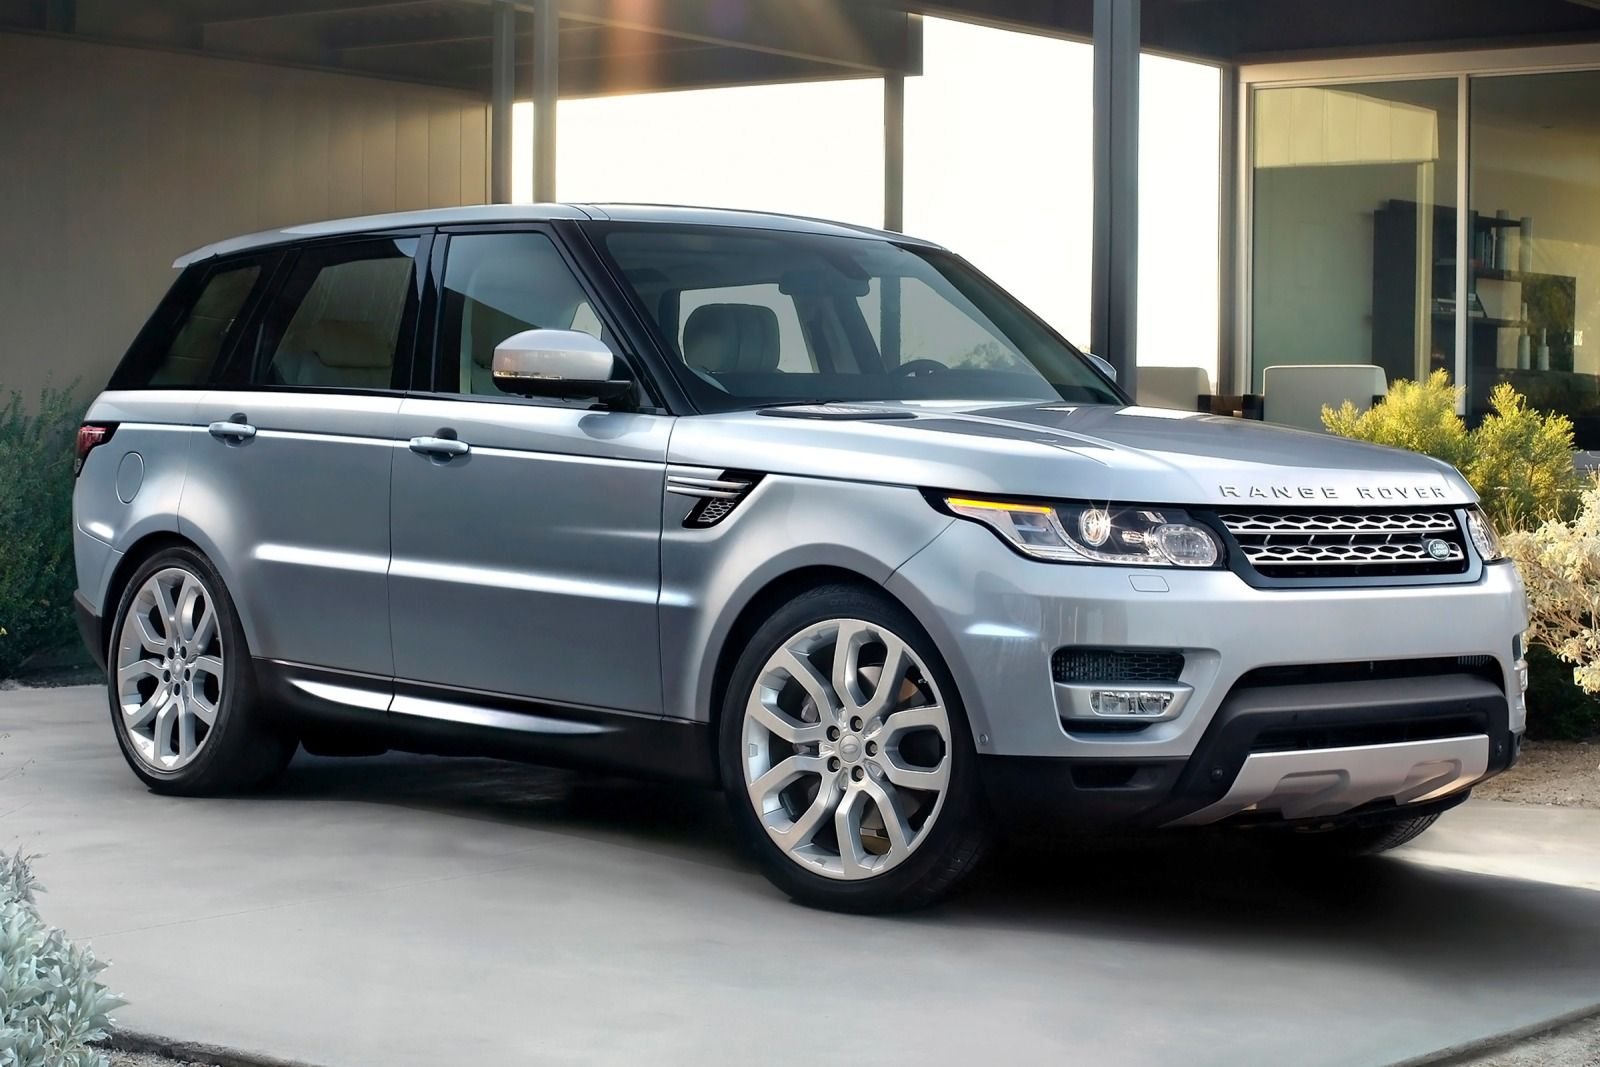 2015 land rover range rover sport information and photos. Black Bedroom Furniture Sets. Home Design Ideas